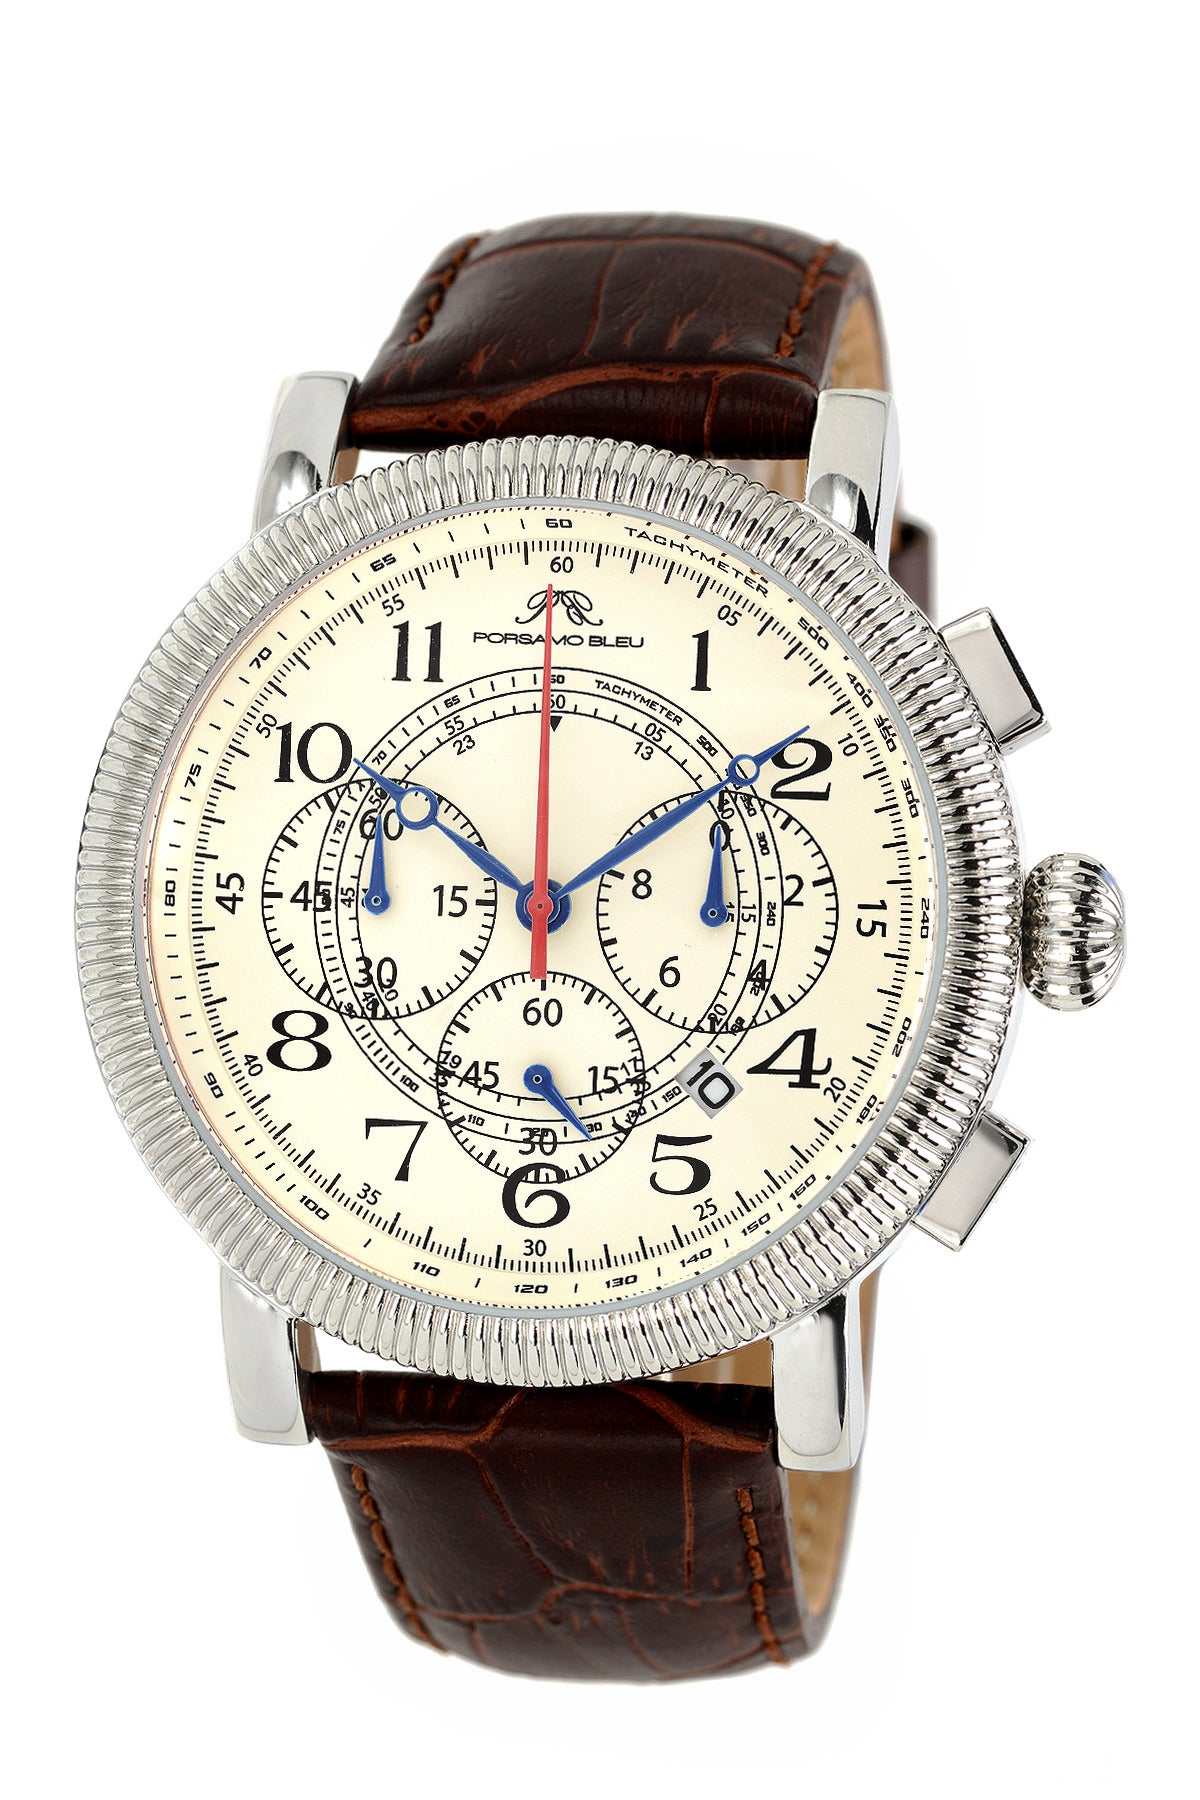 Porsamo Bleu Phileas luxury chronograph men's watch, genuine leather band silver, brown 471APHL